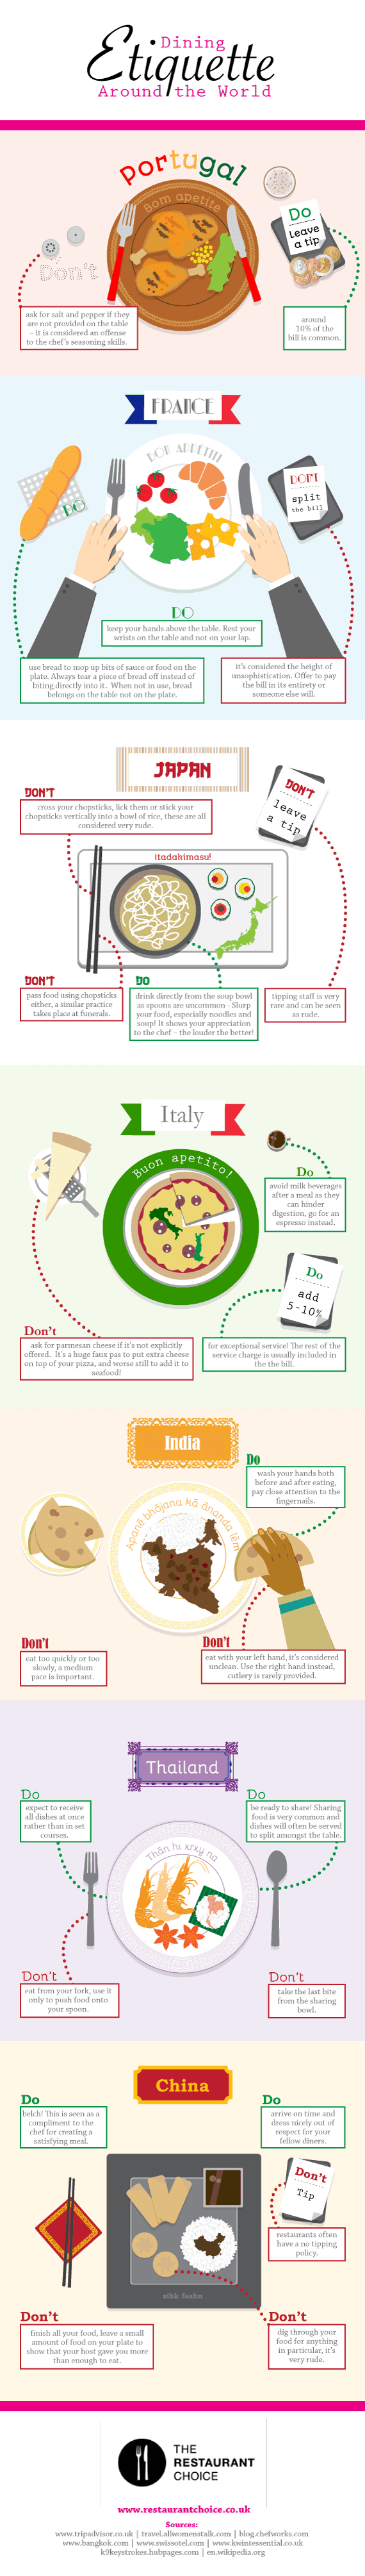 Dining Etiquette Around The World #infographic #Dining Etiquette #Etiquette #infographics #World